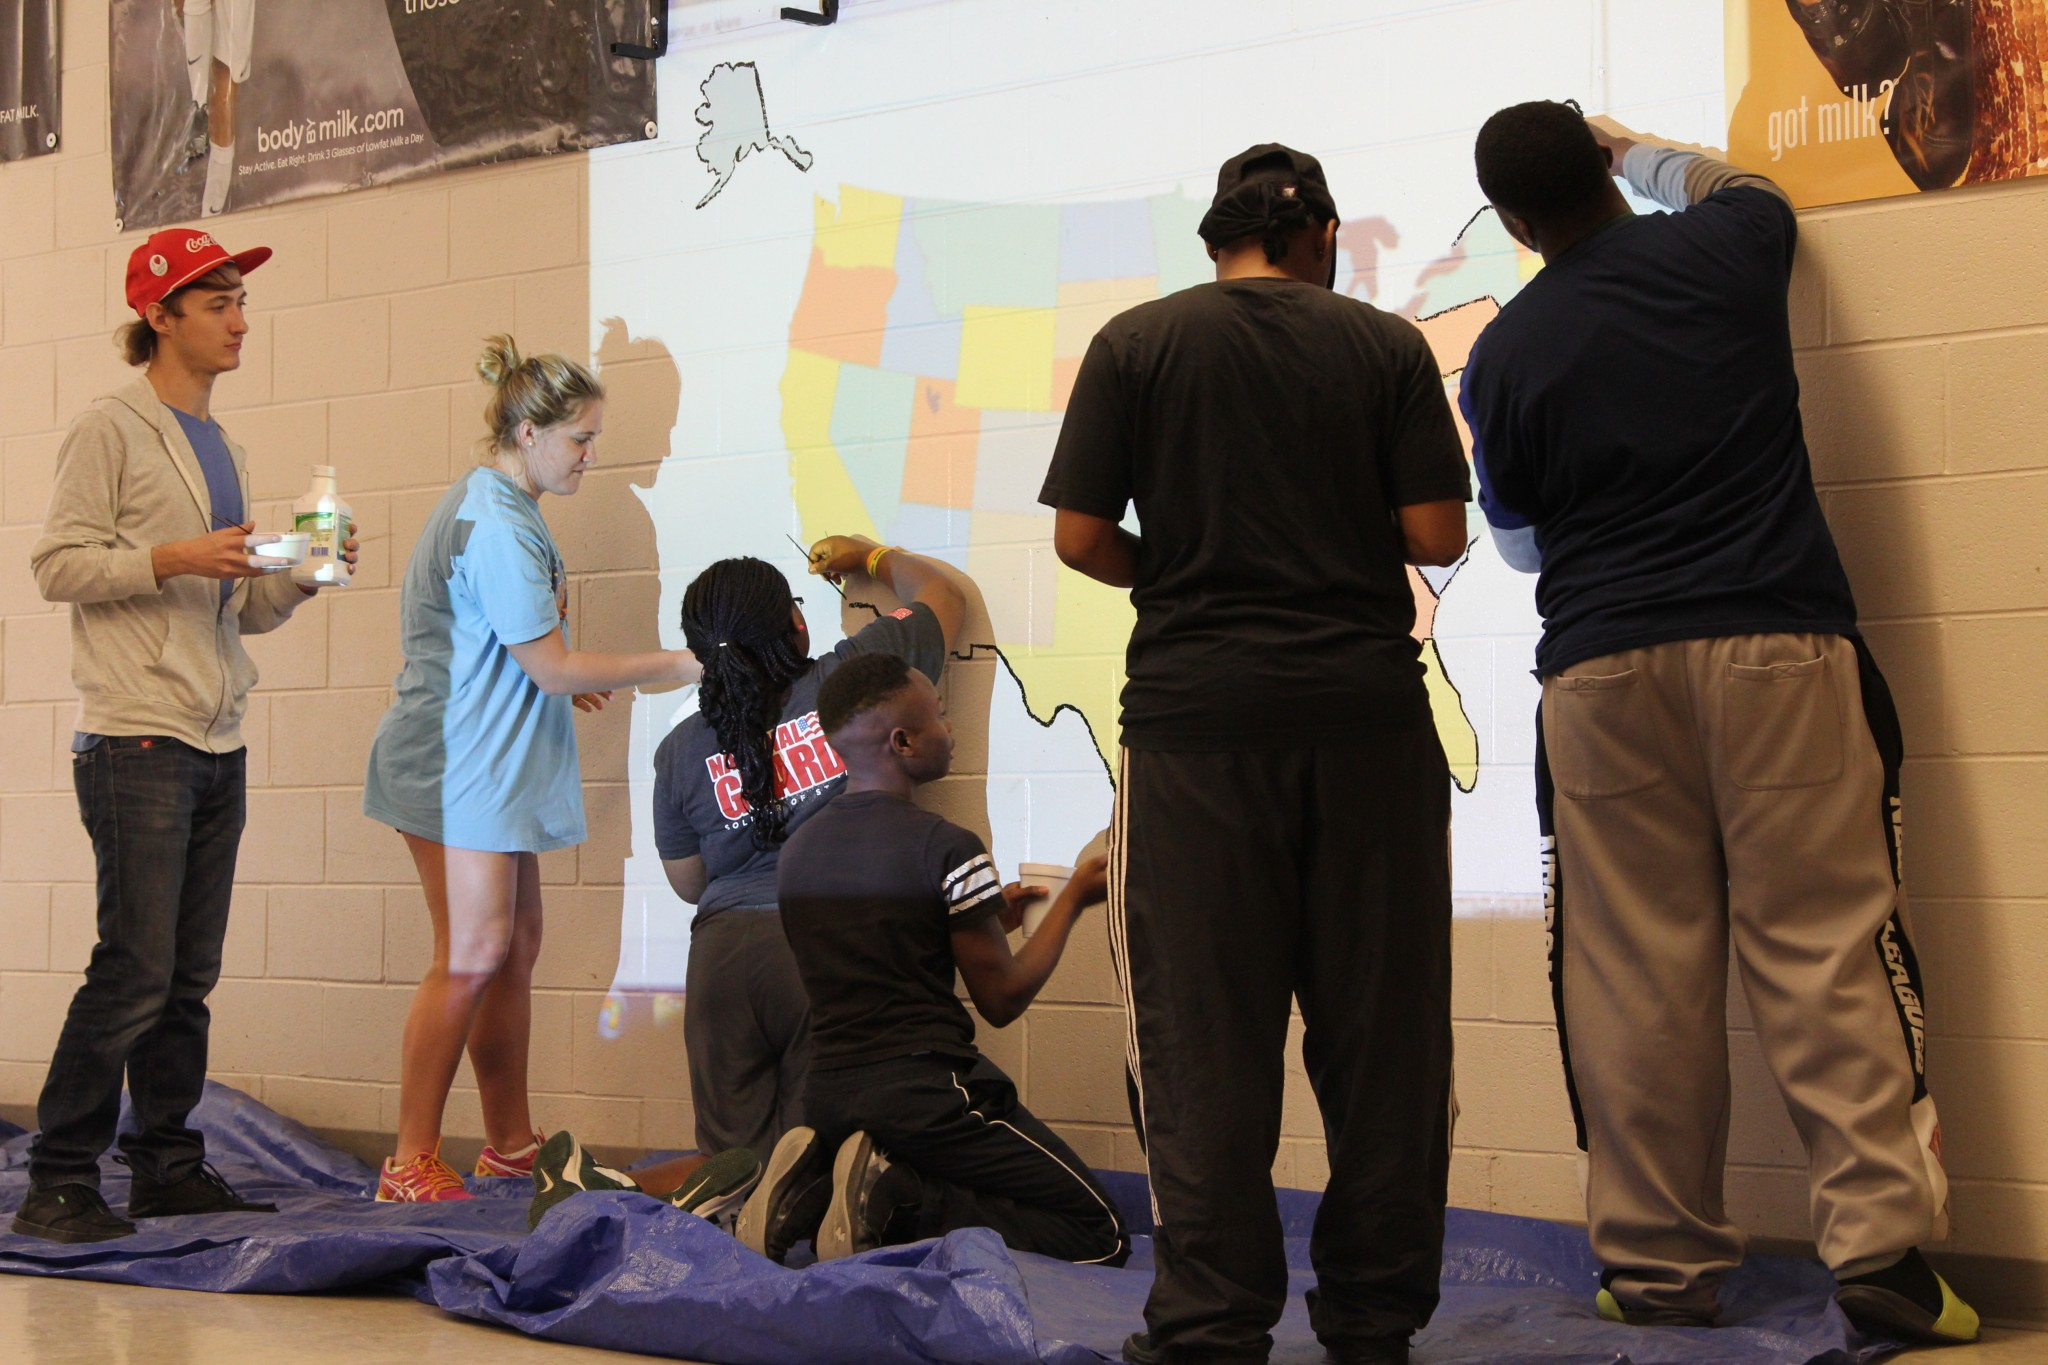 UM students work during their spring break, painting a large map on a wall at a West Tallatchie school.